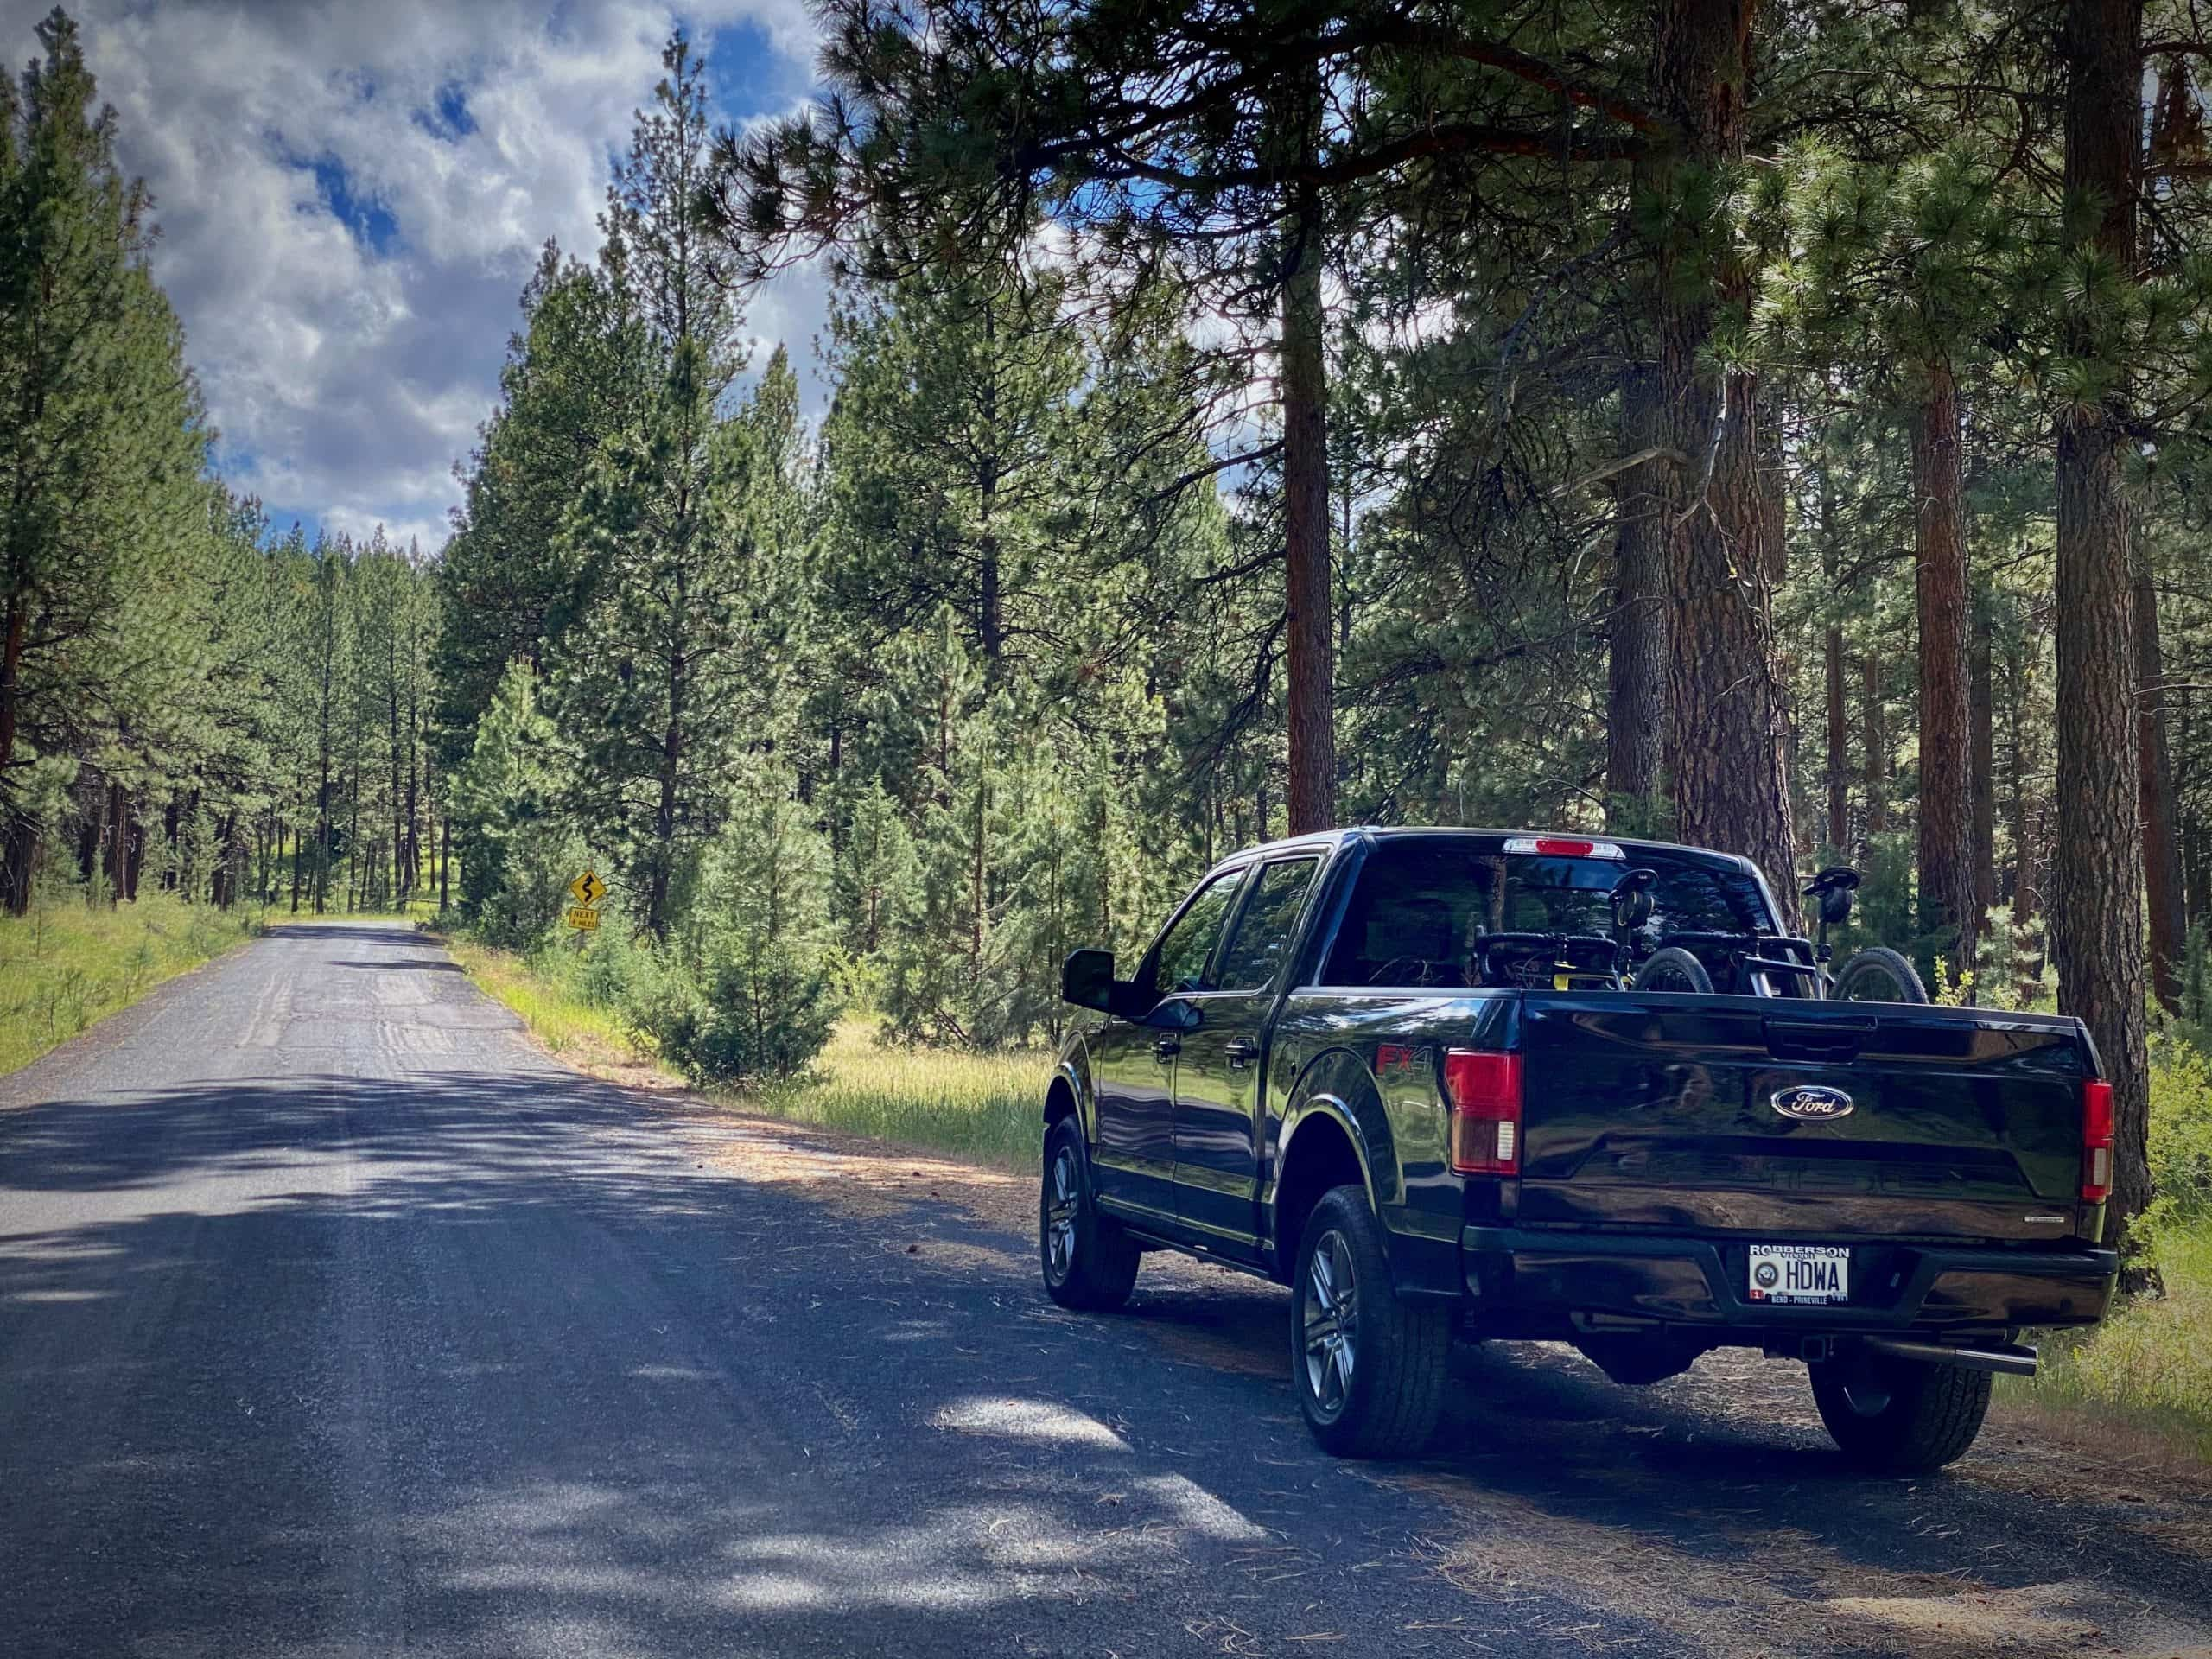 Ford F150 truck parked at pullout on NF 12 in the Ochoco Mountains near Mitchell, Oregon.